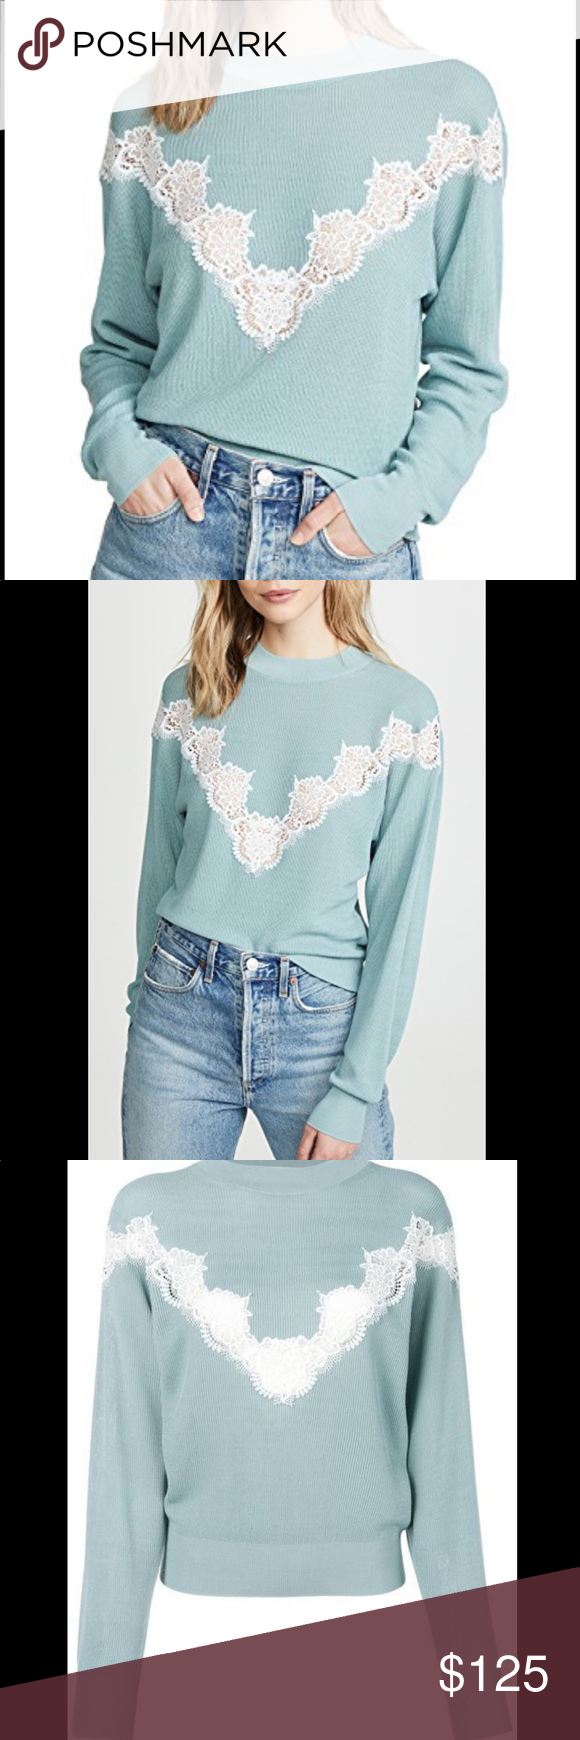 See by Chloe blue Nile pullover Brand new. $455. Size medium. See By Chloe Sweaters #seebychloe